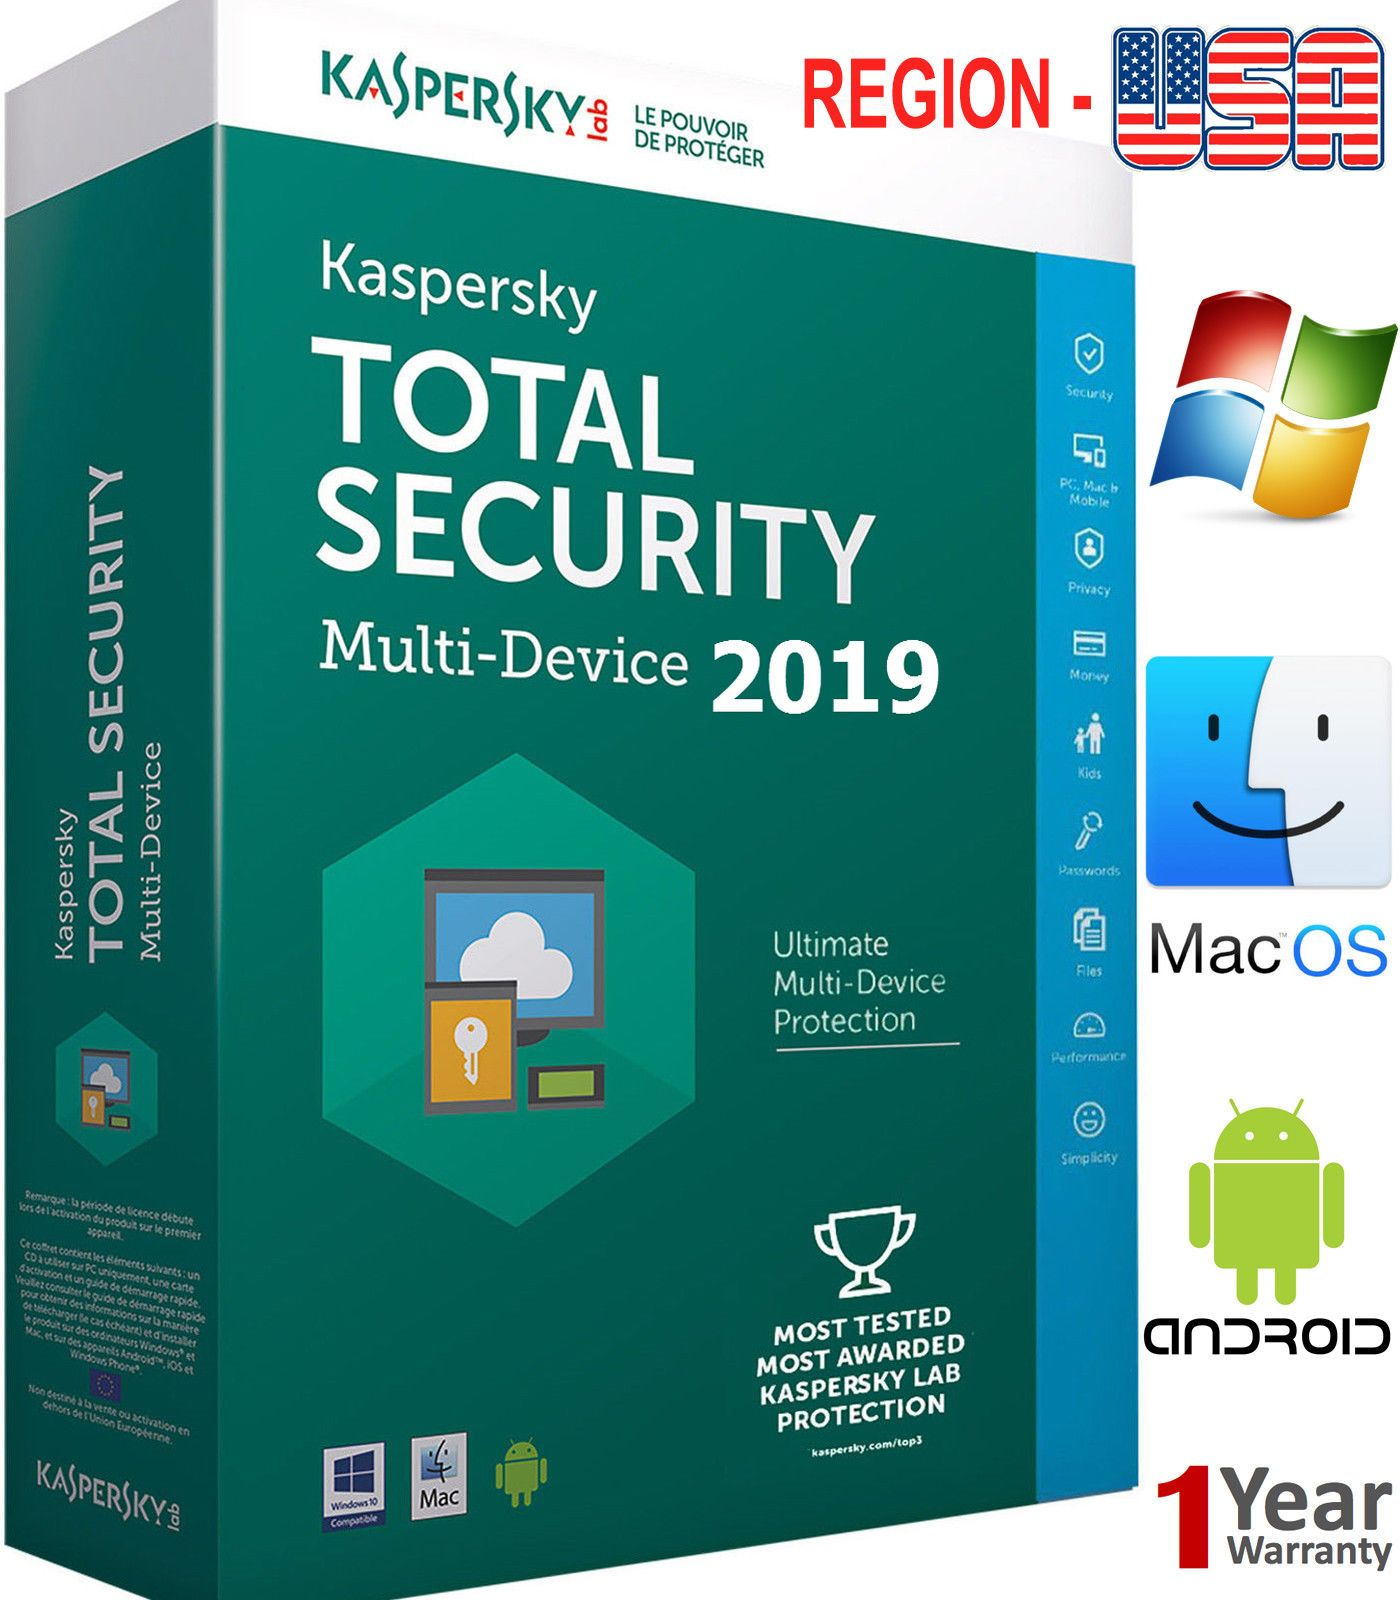 Details About Kaspersky Total Security 2020 5 Pc 1 Year 5 Device Download For Americas Computer Security Security Internet Security